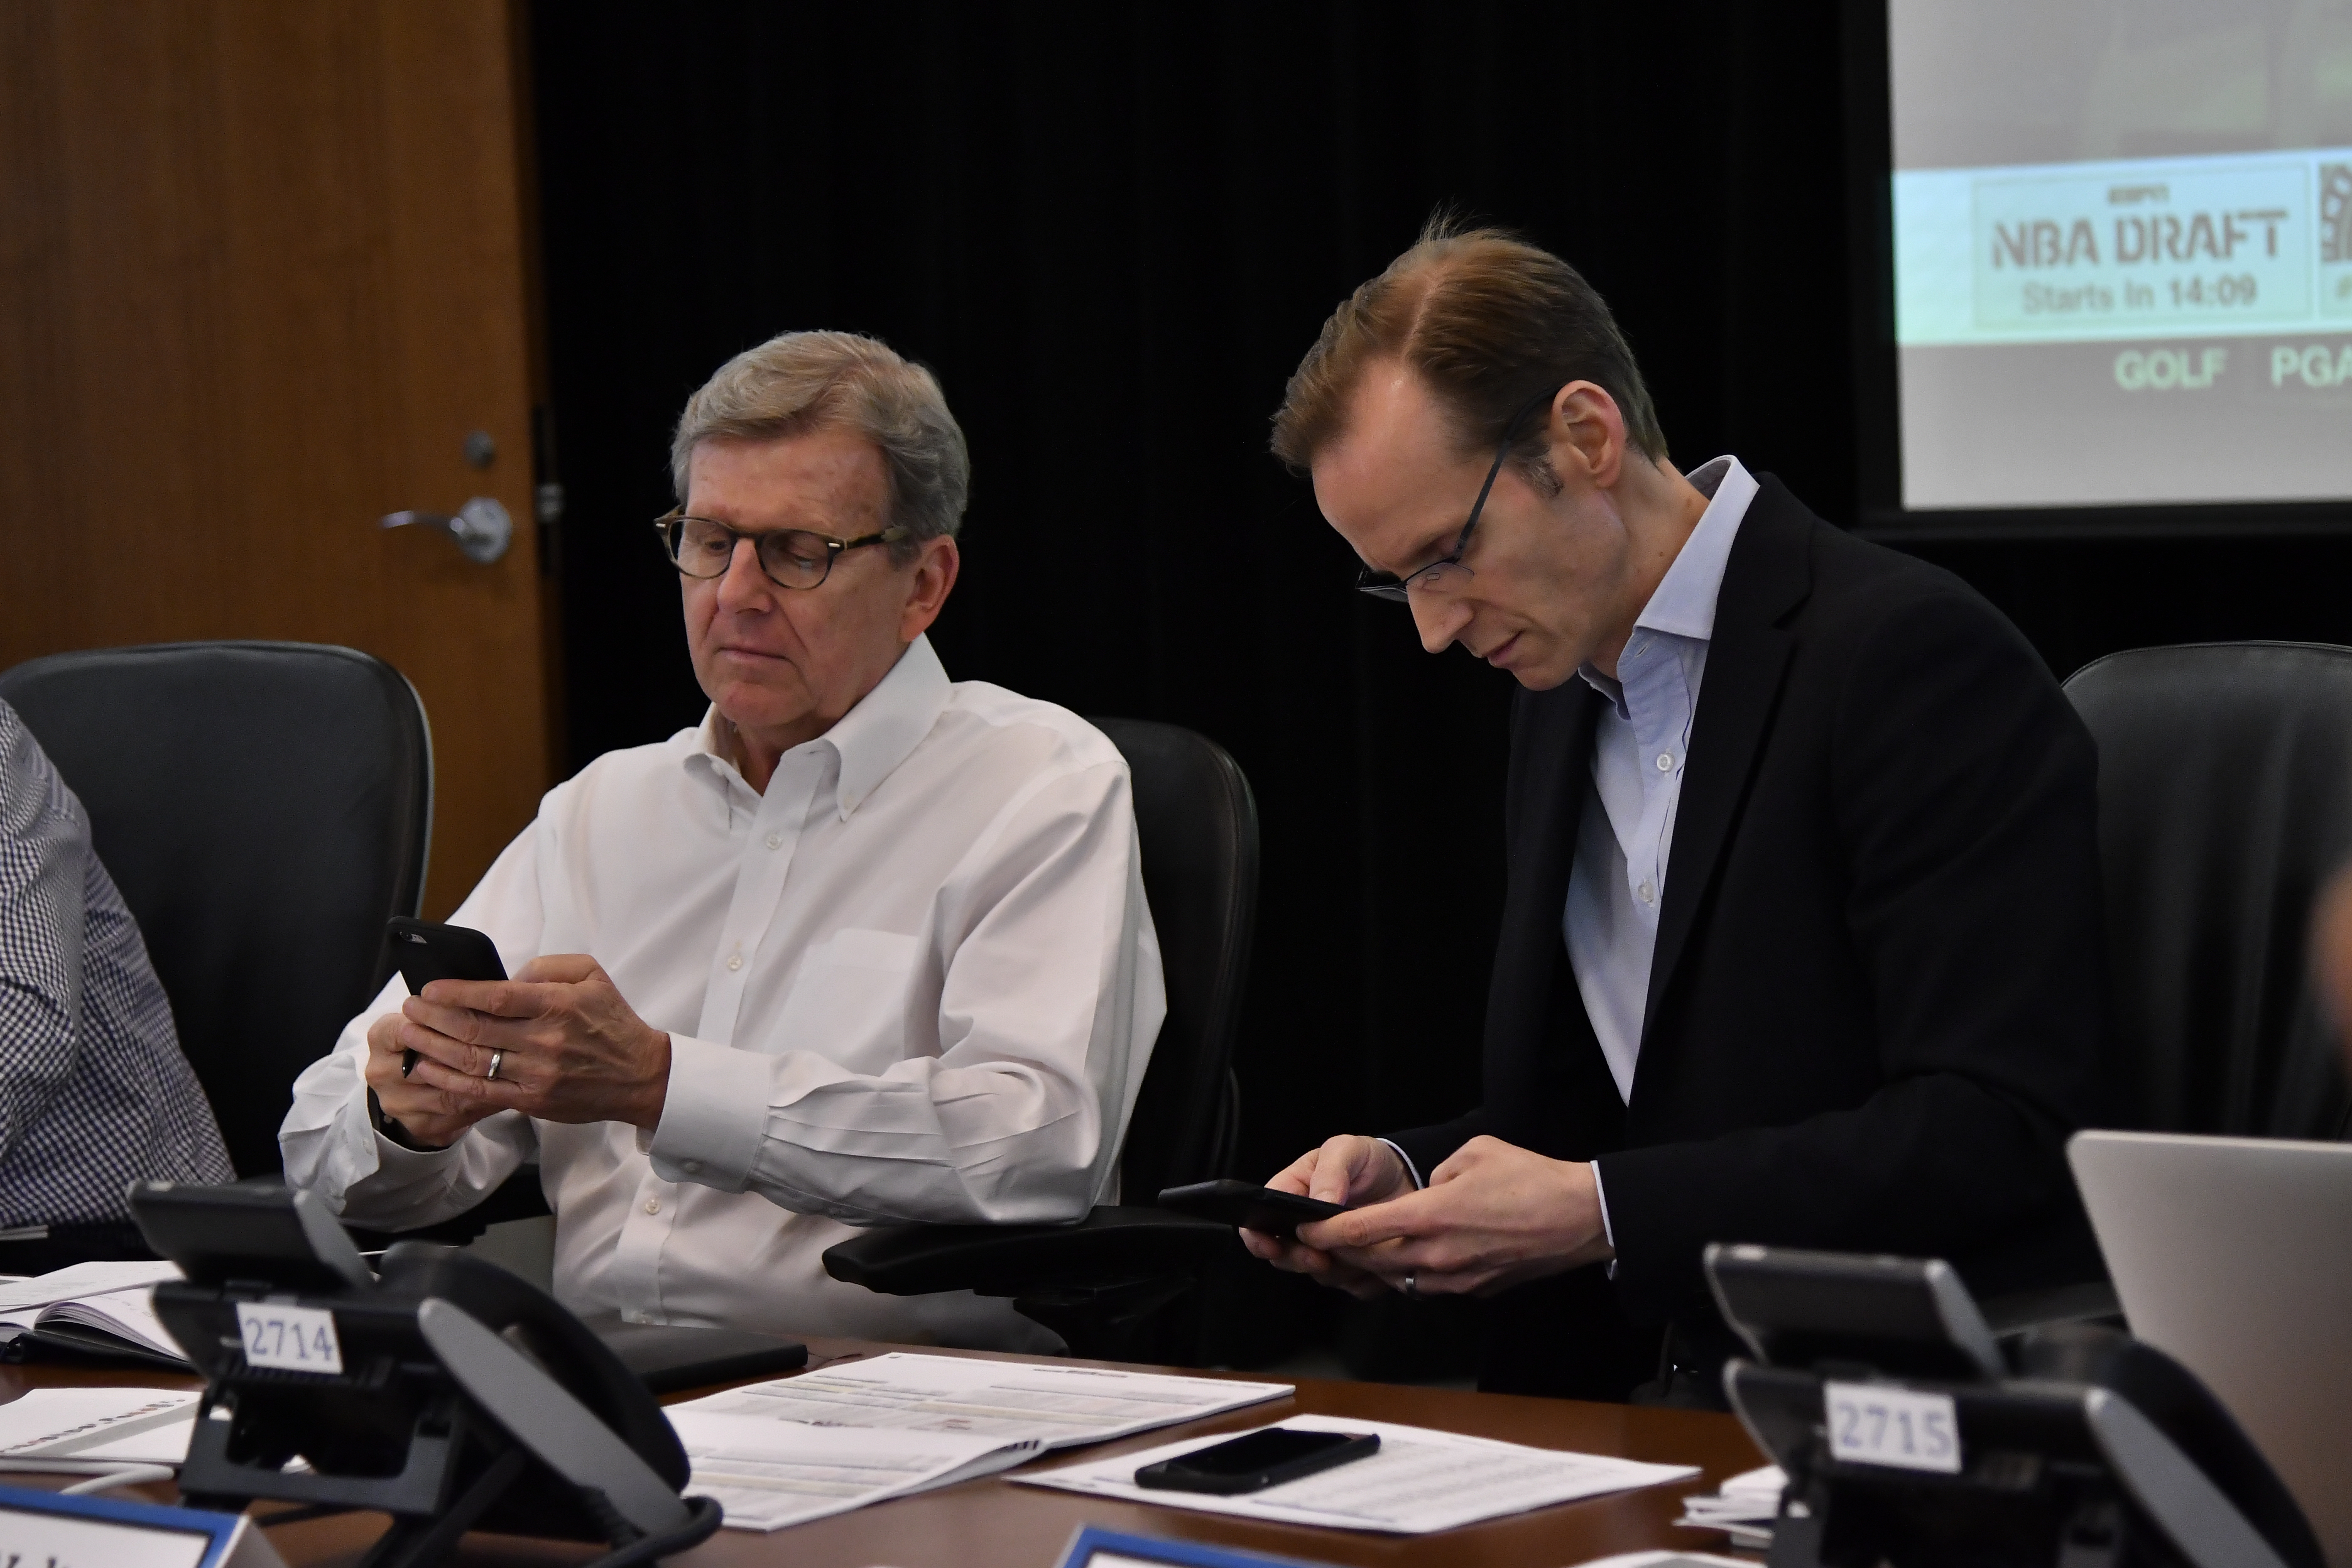 John Hammond and Jeff Weltman of the Orlando Magic talk in the war room during the 2017 NBA Draft on June 22, 2017 at Amway Center in Orlando, Florida.